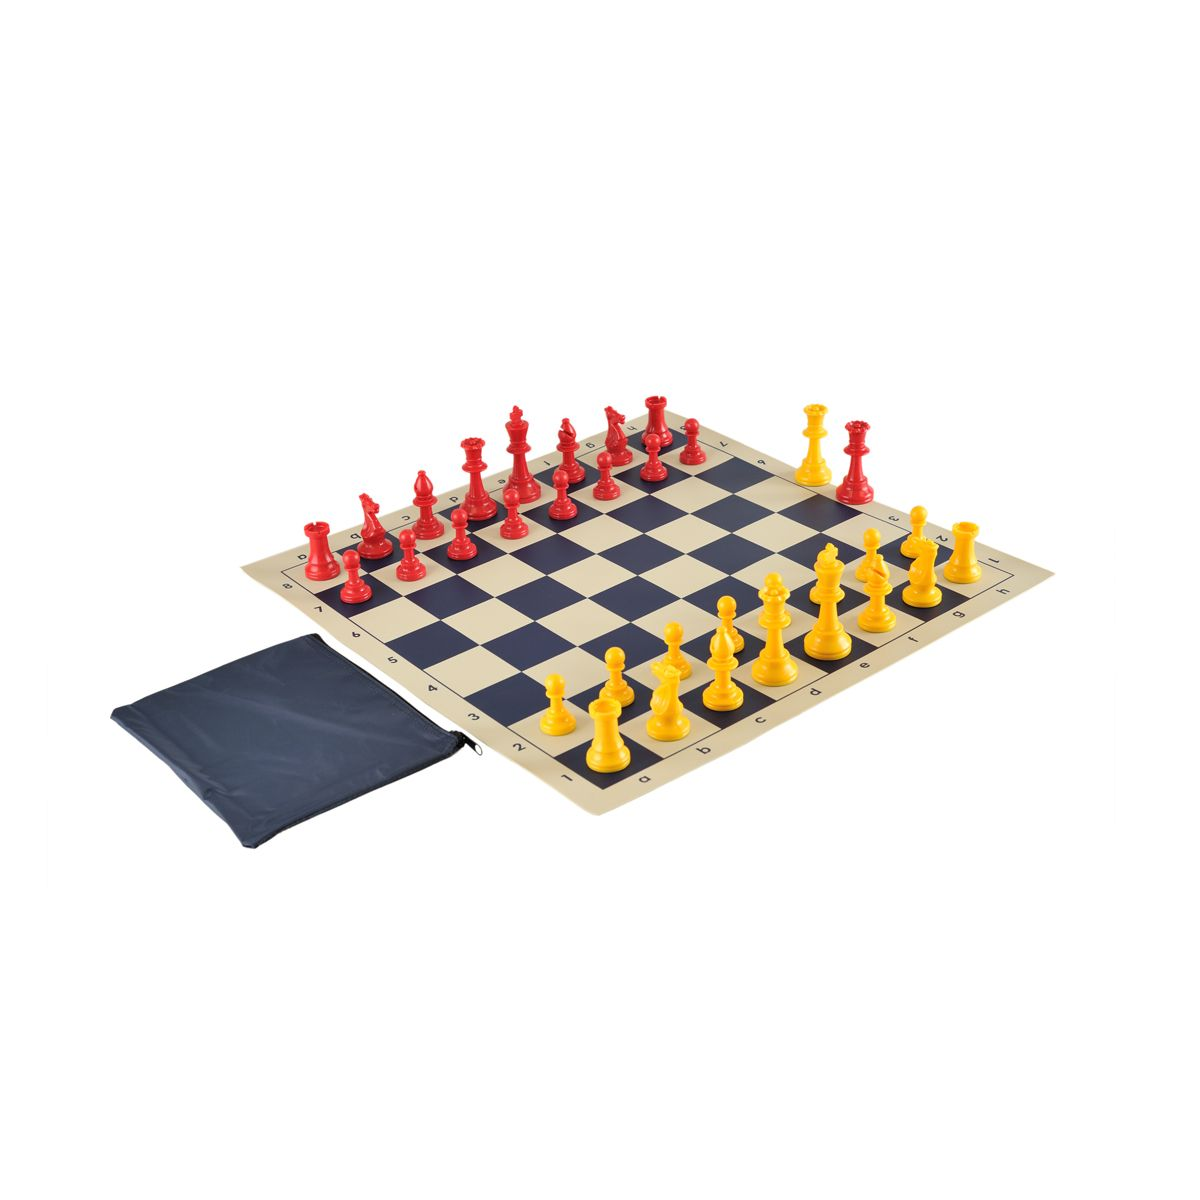 Buy Kids Club Chess Set Combo From Wholesale Chess We Offer Great